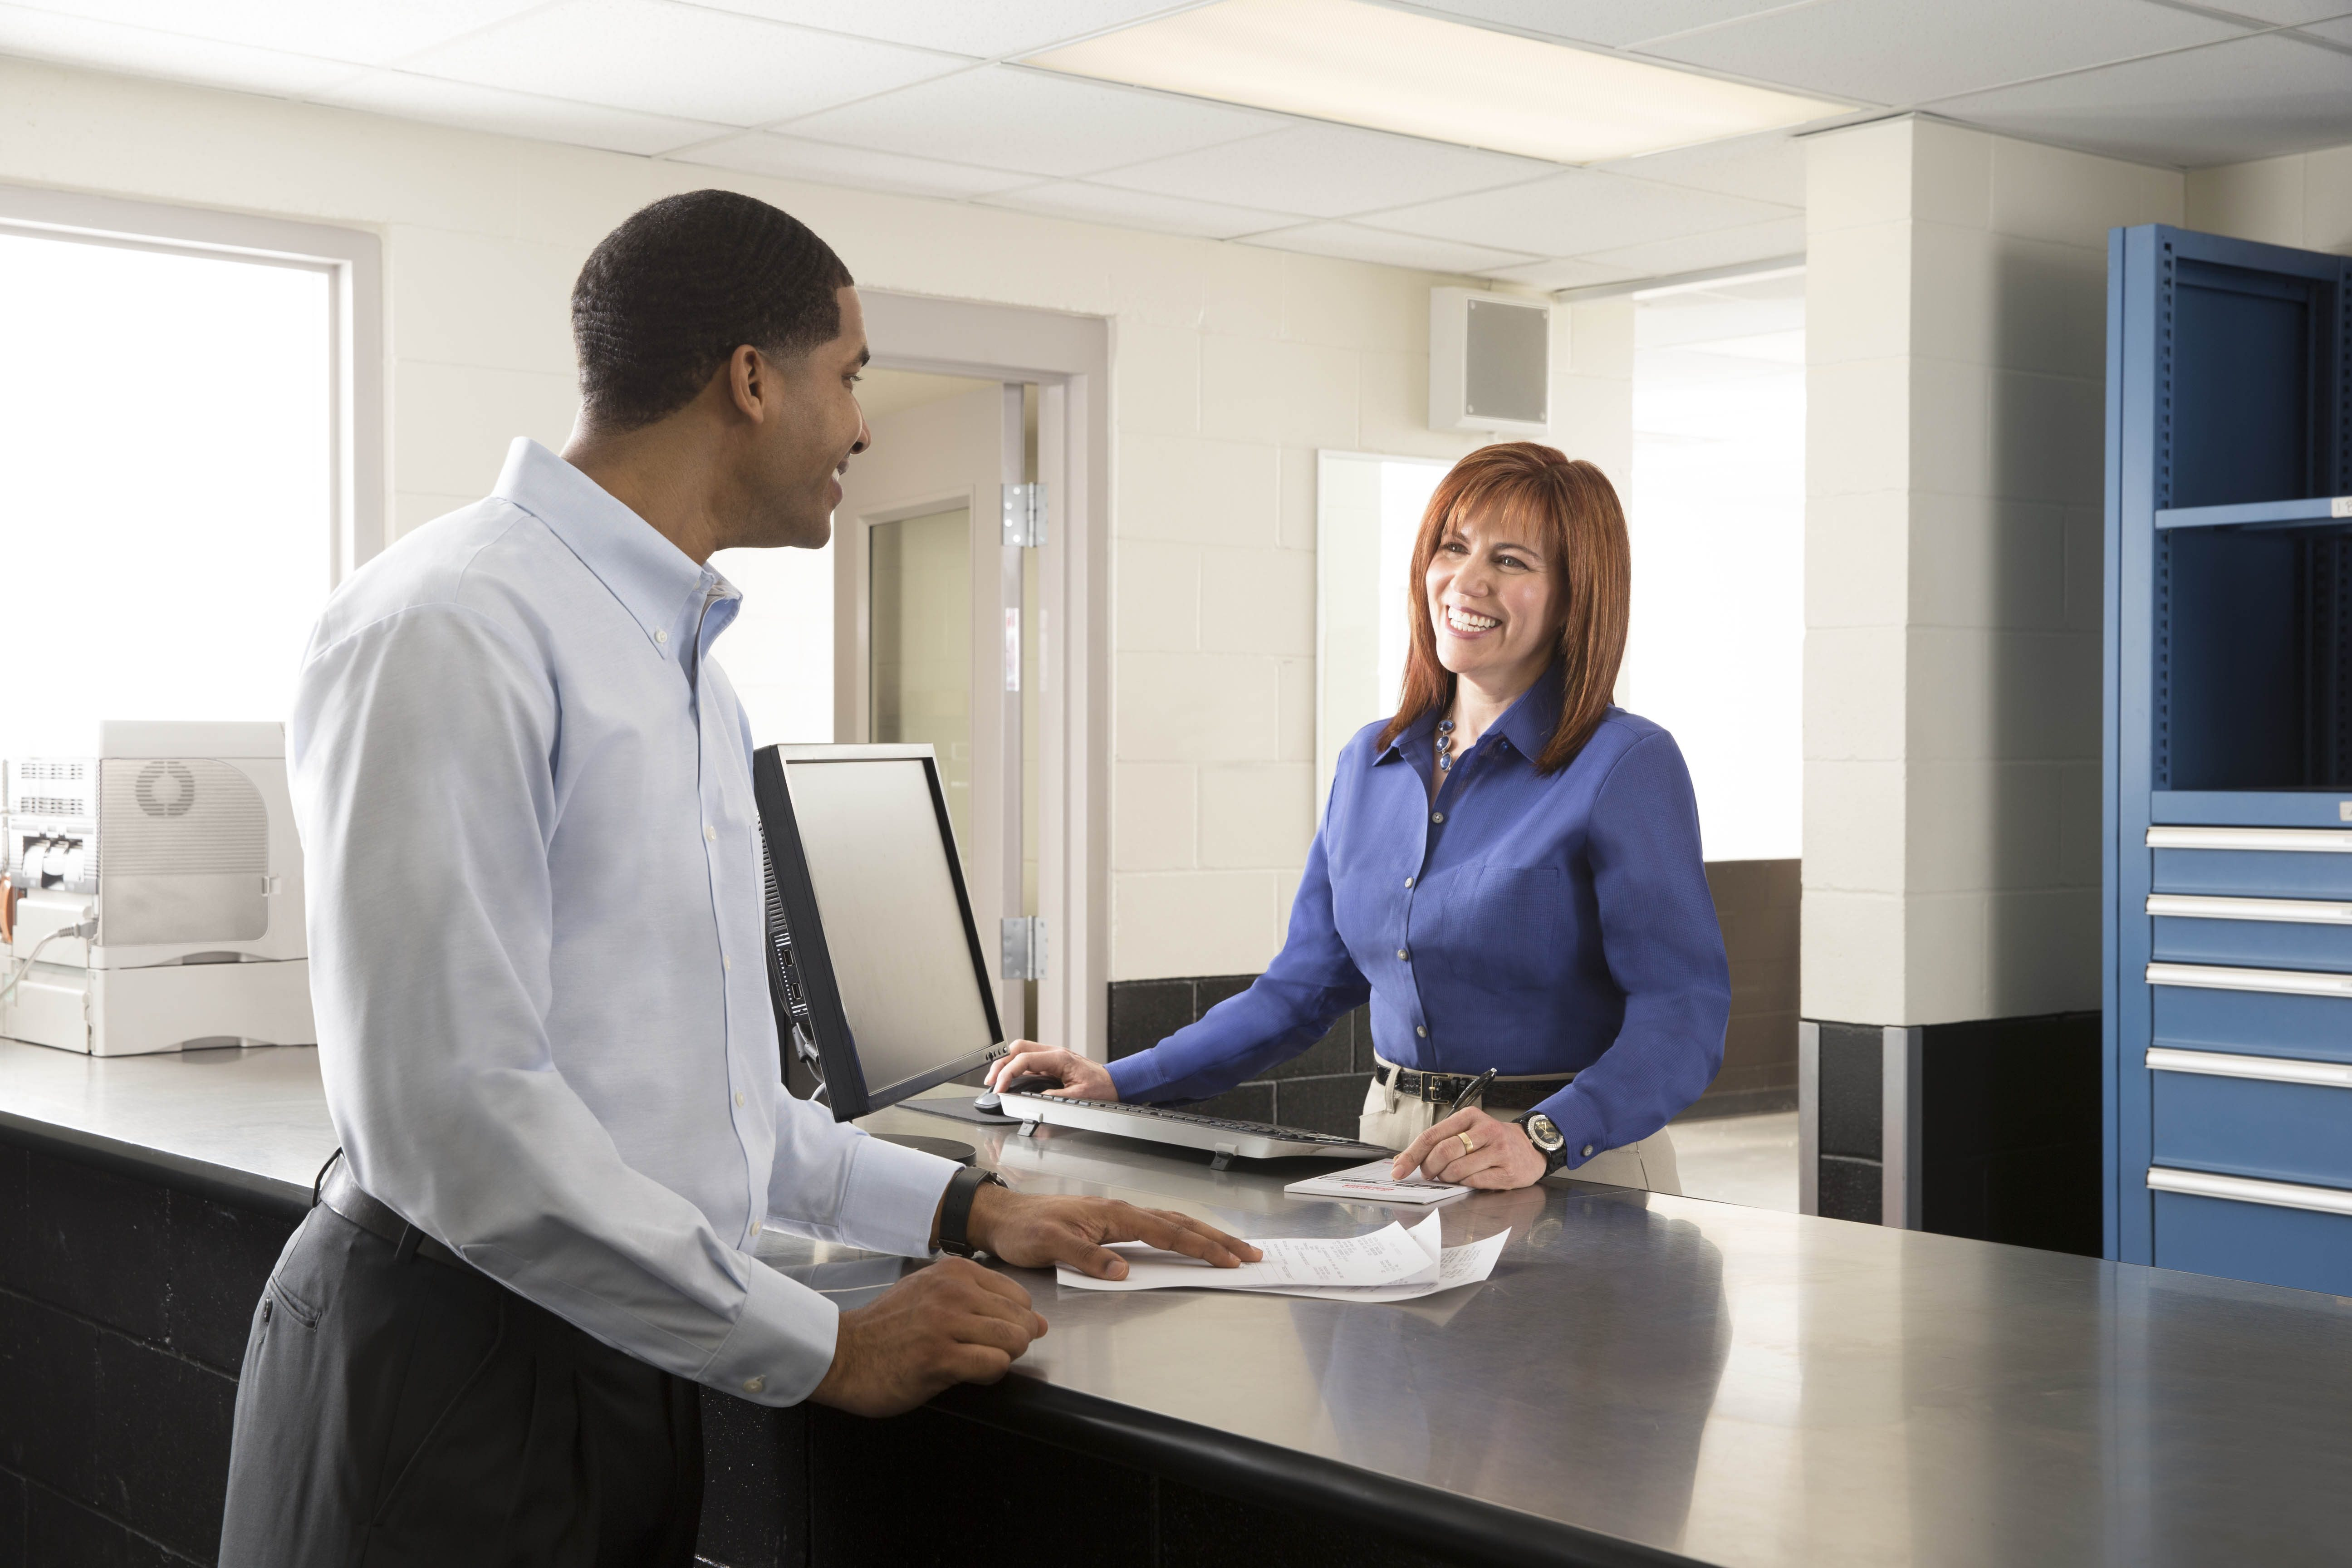 Woman in a hospitality uniform (blue dress shirt) checking in a customer at the front desk